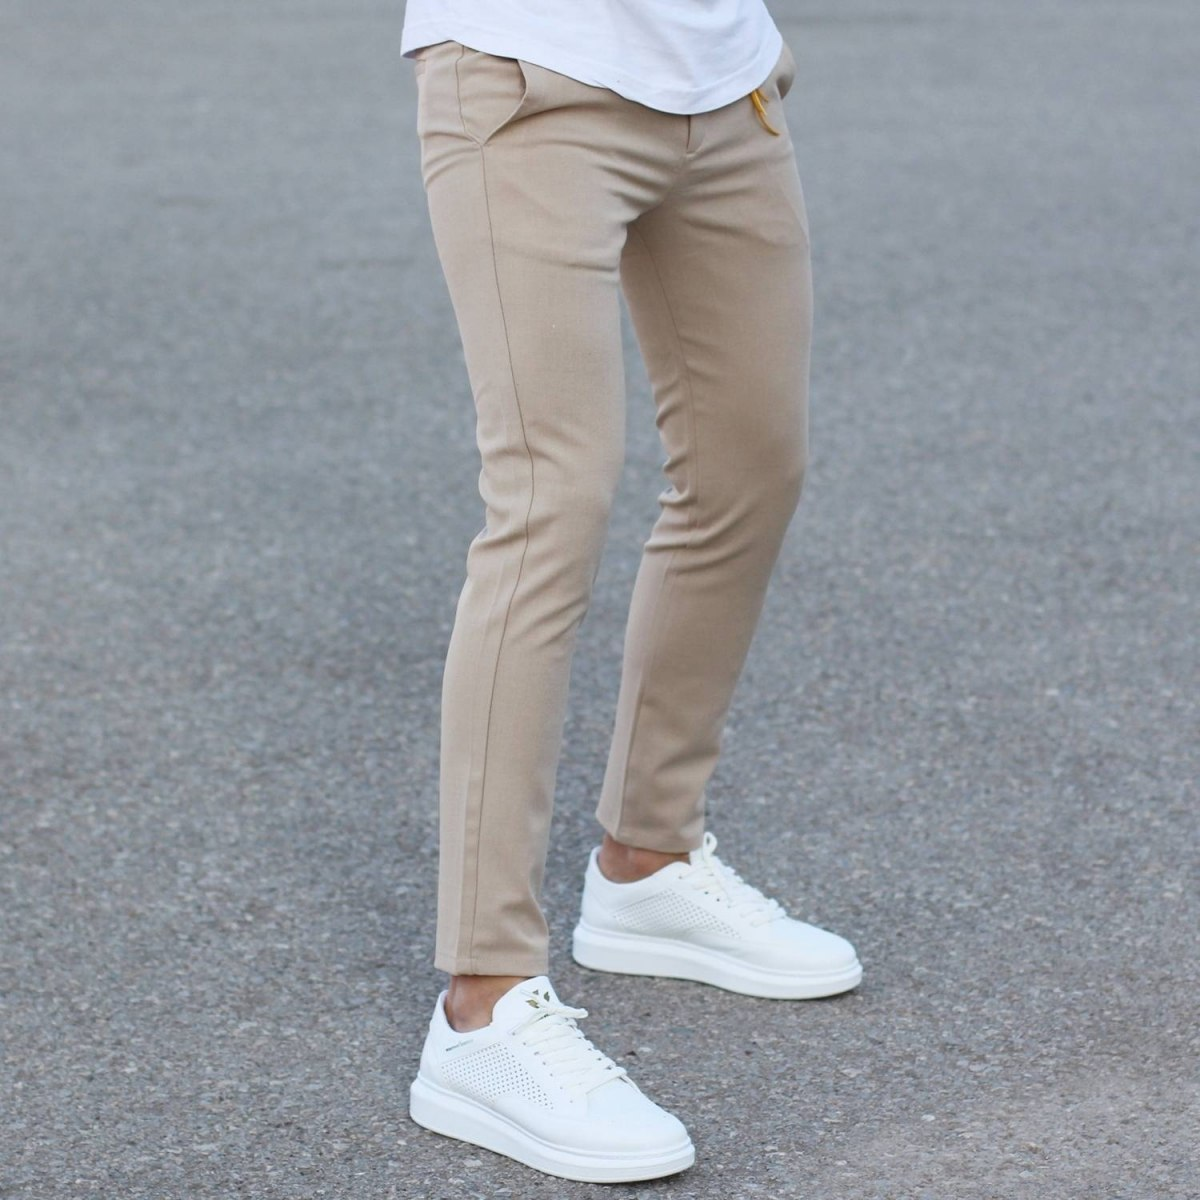 Comfort Smart-Wear Pants in Beige Mv Premium Brand - 4